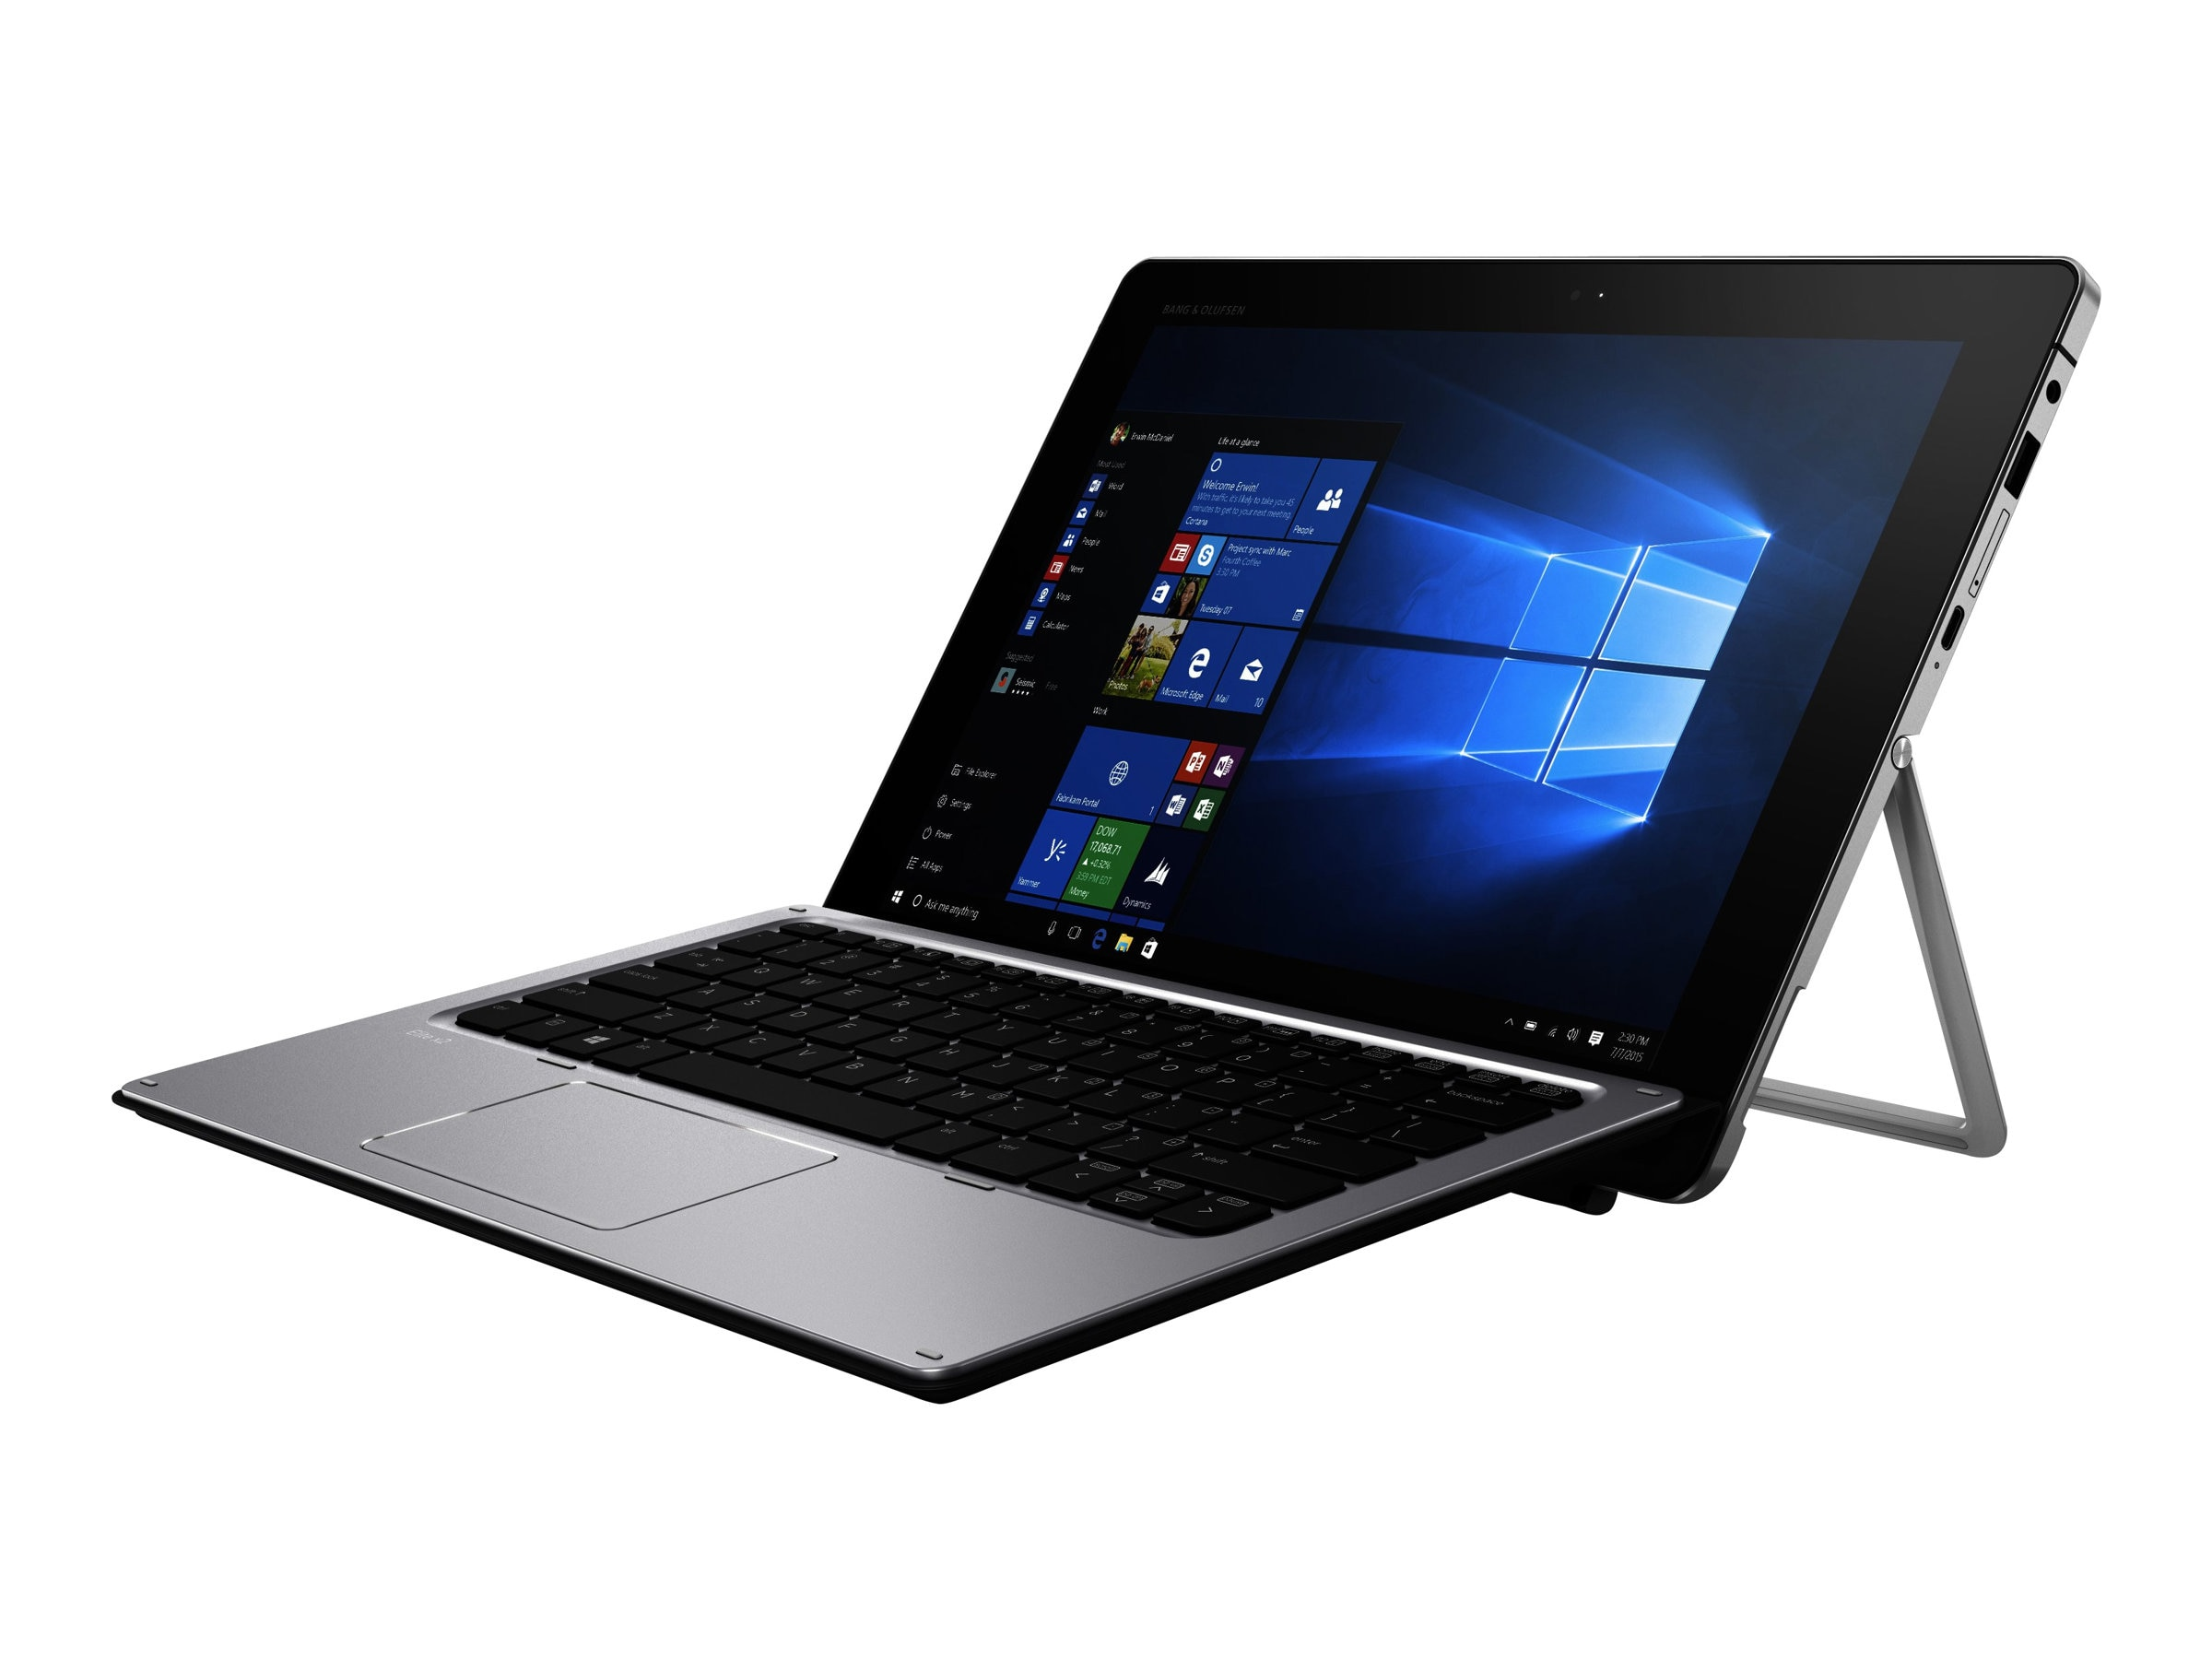 HP Elite x2 1012 0.9GHz processor Windows 10 Pro 64-bit Edition